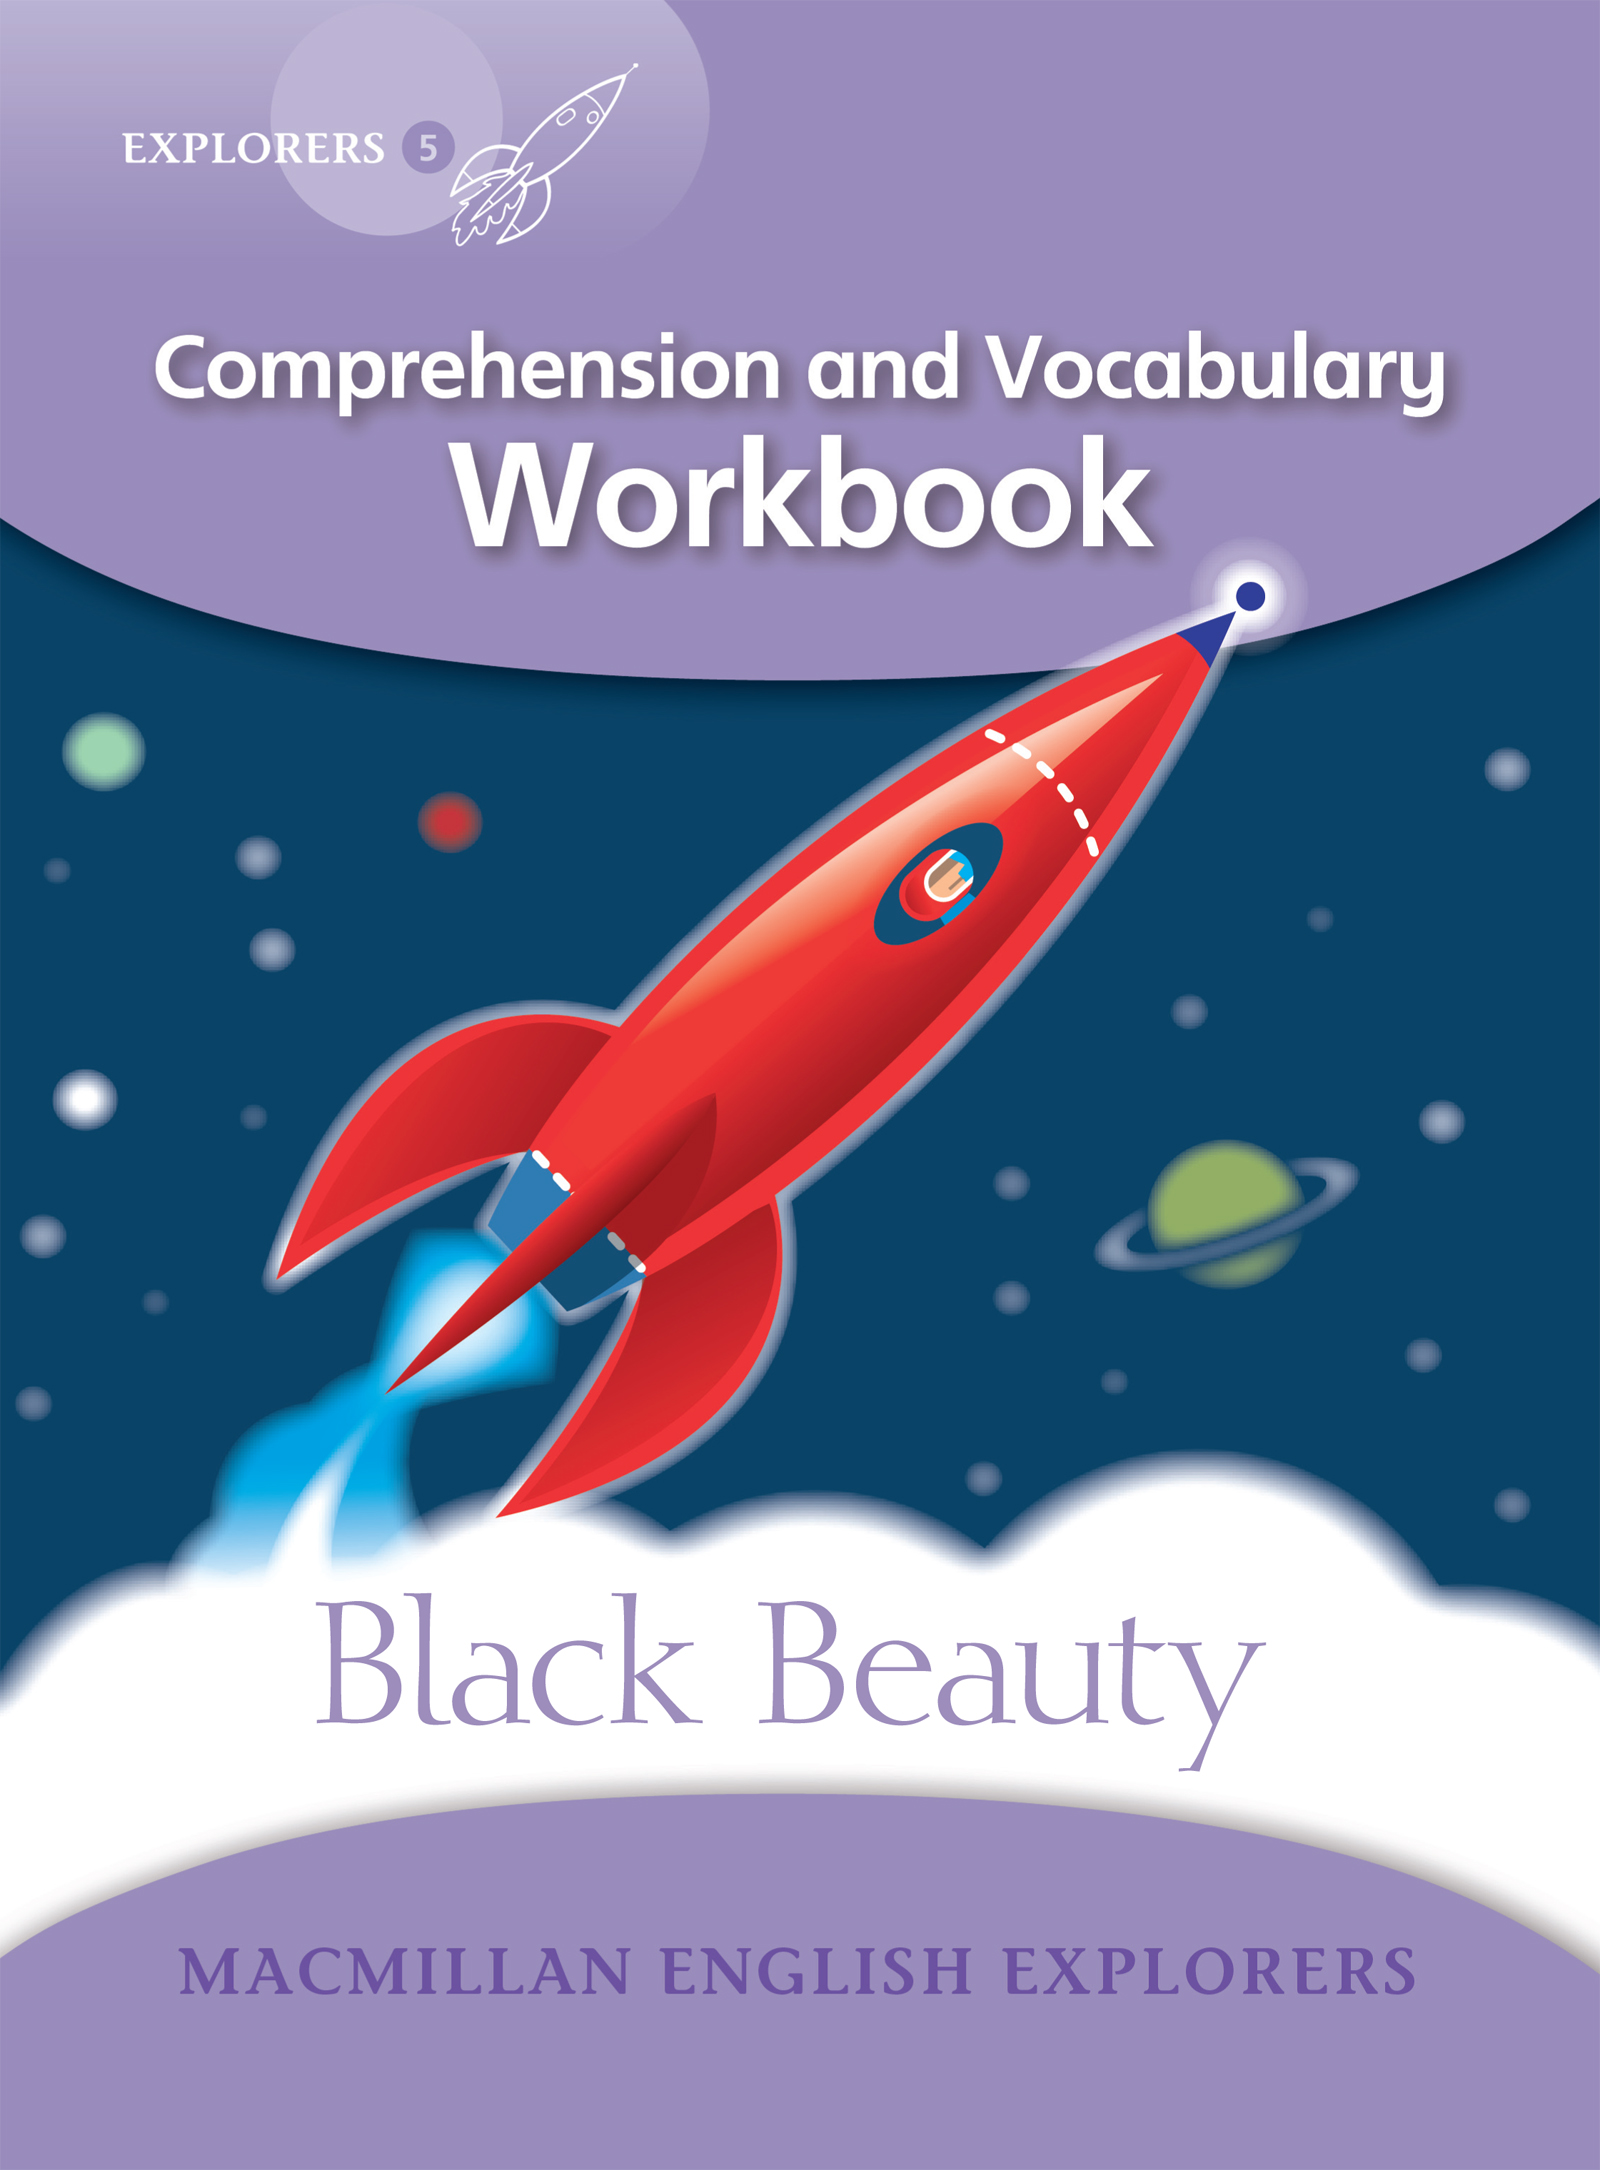 Explorers 5: Black Beauty Workbook